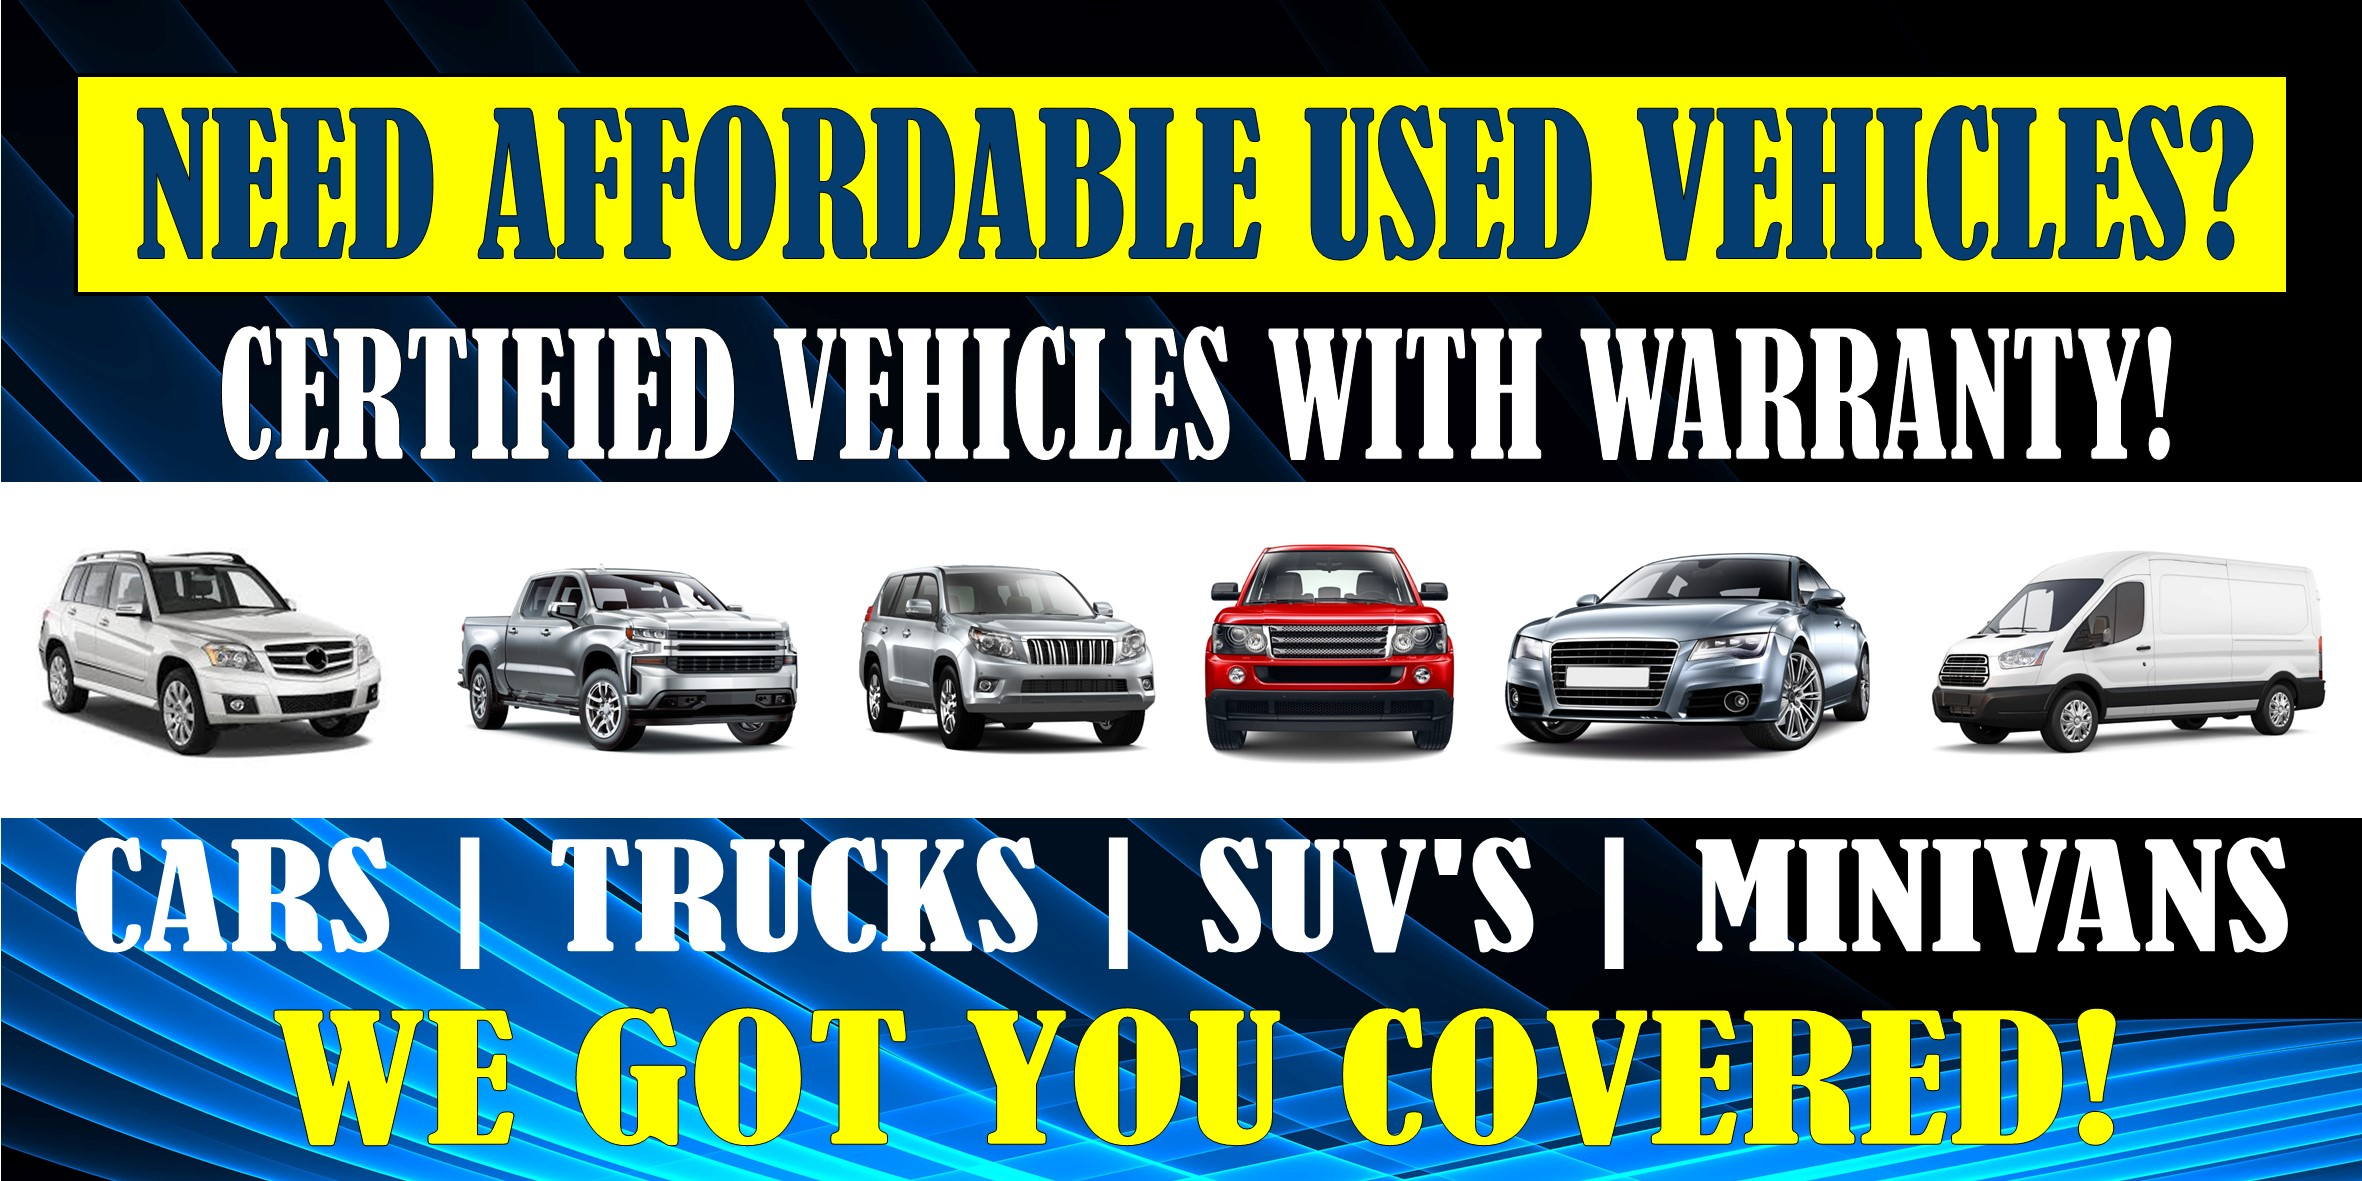 Do you Need affordable used vehicles?